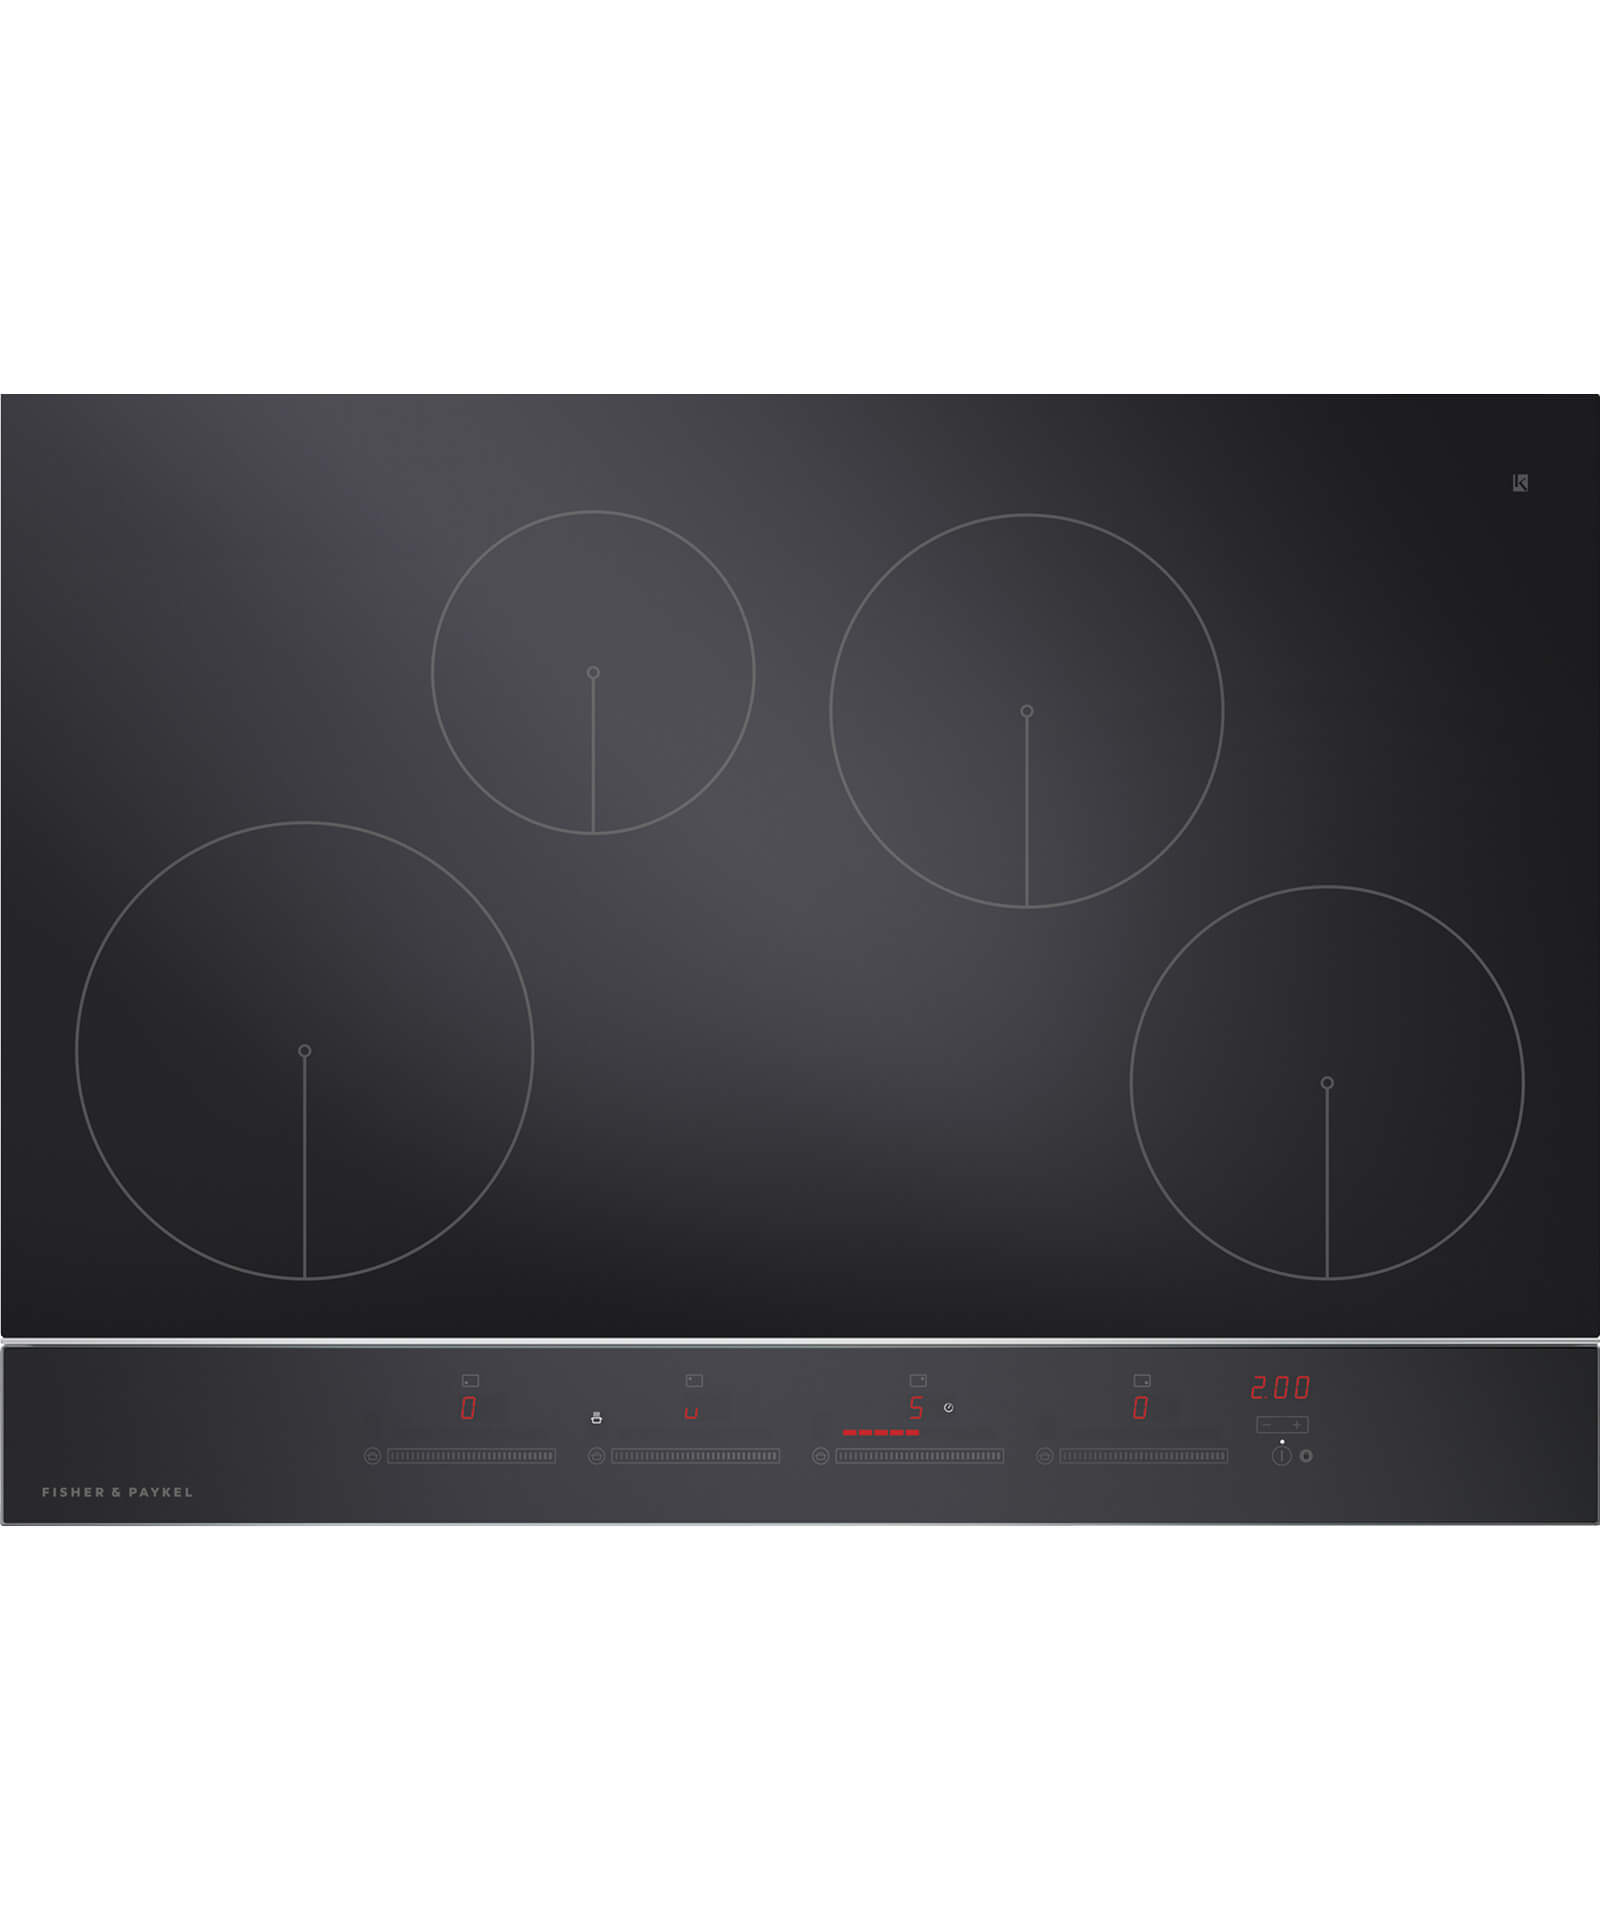 CI754DTB2 - 75cm 4 Zone Touch&Slide Induction Cooktop - 81364